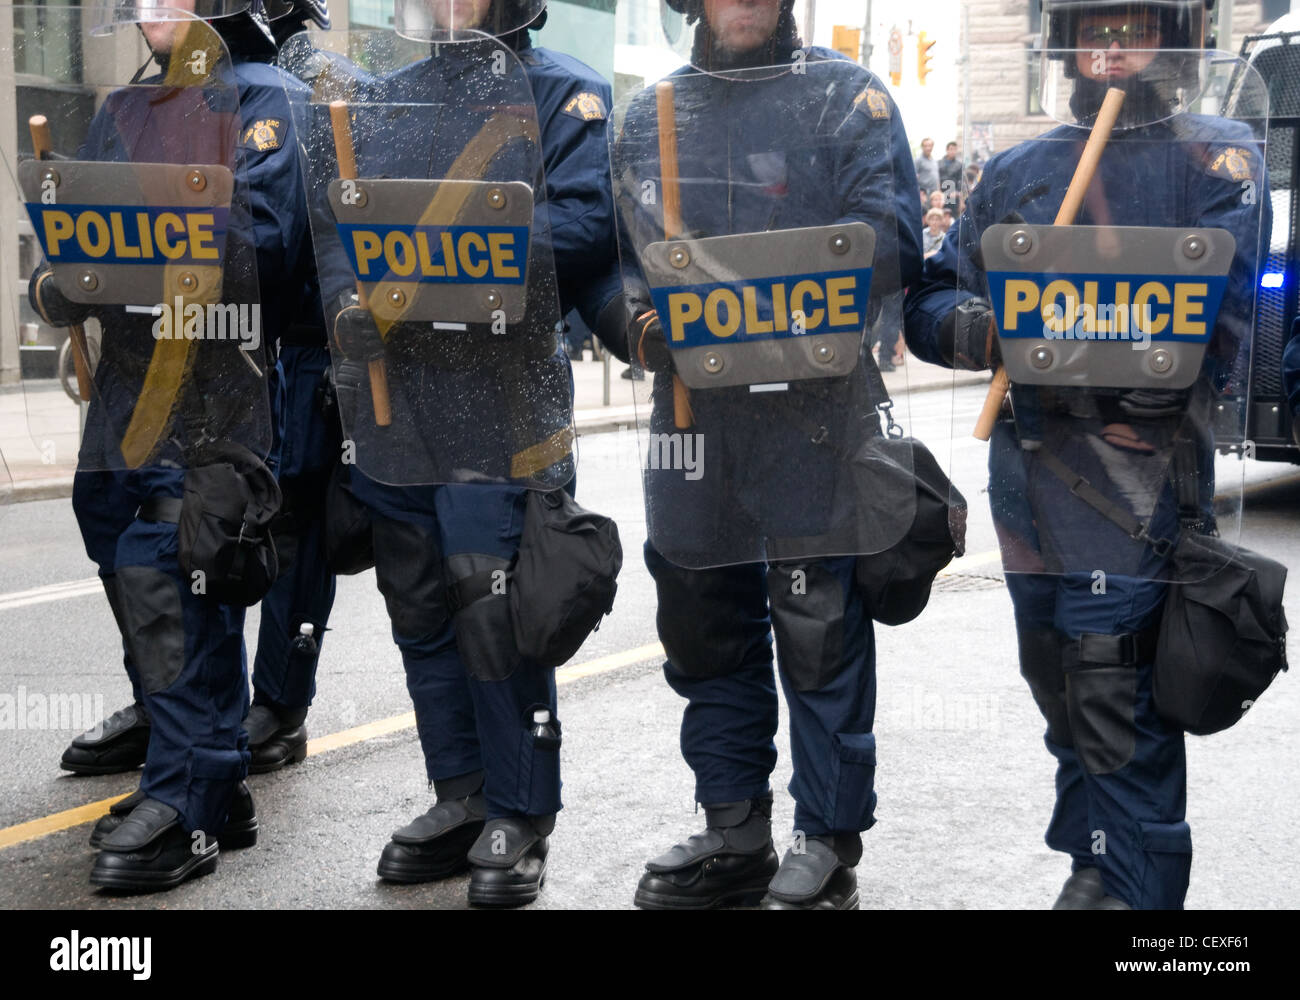 Riot police facing protesters on a downtown Toronto street during the G20 economic summit in the summer of 2010 - Stock Image